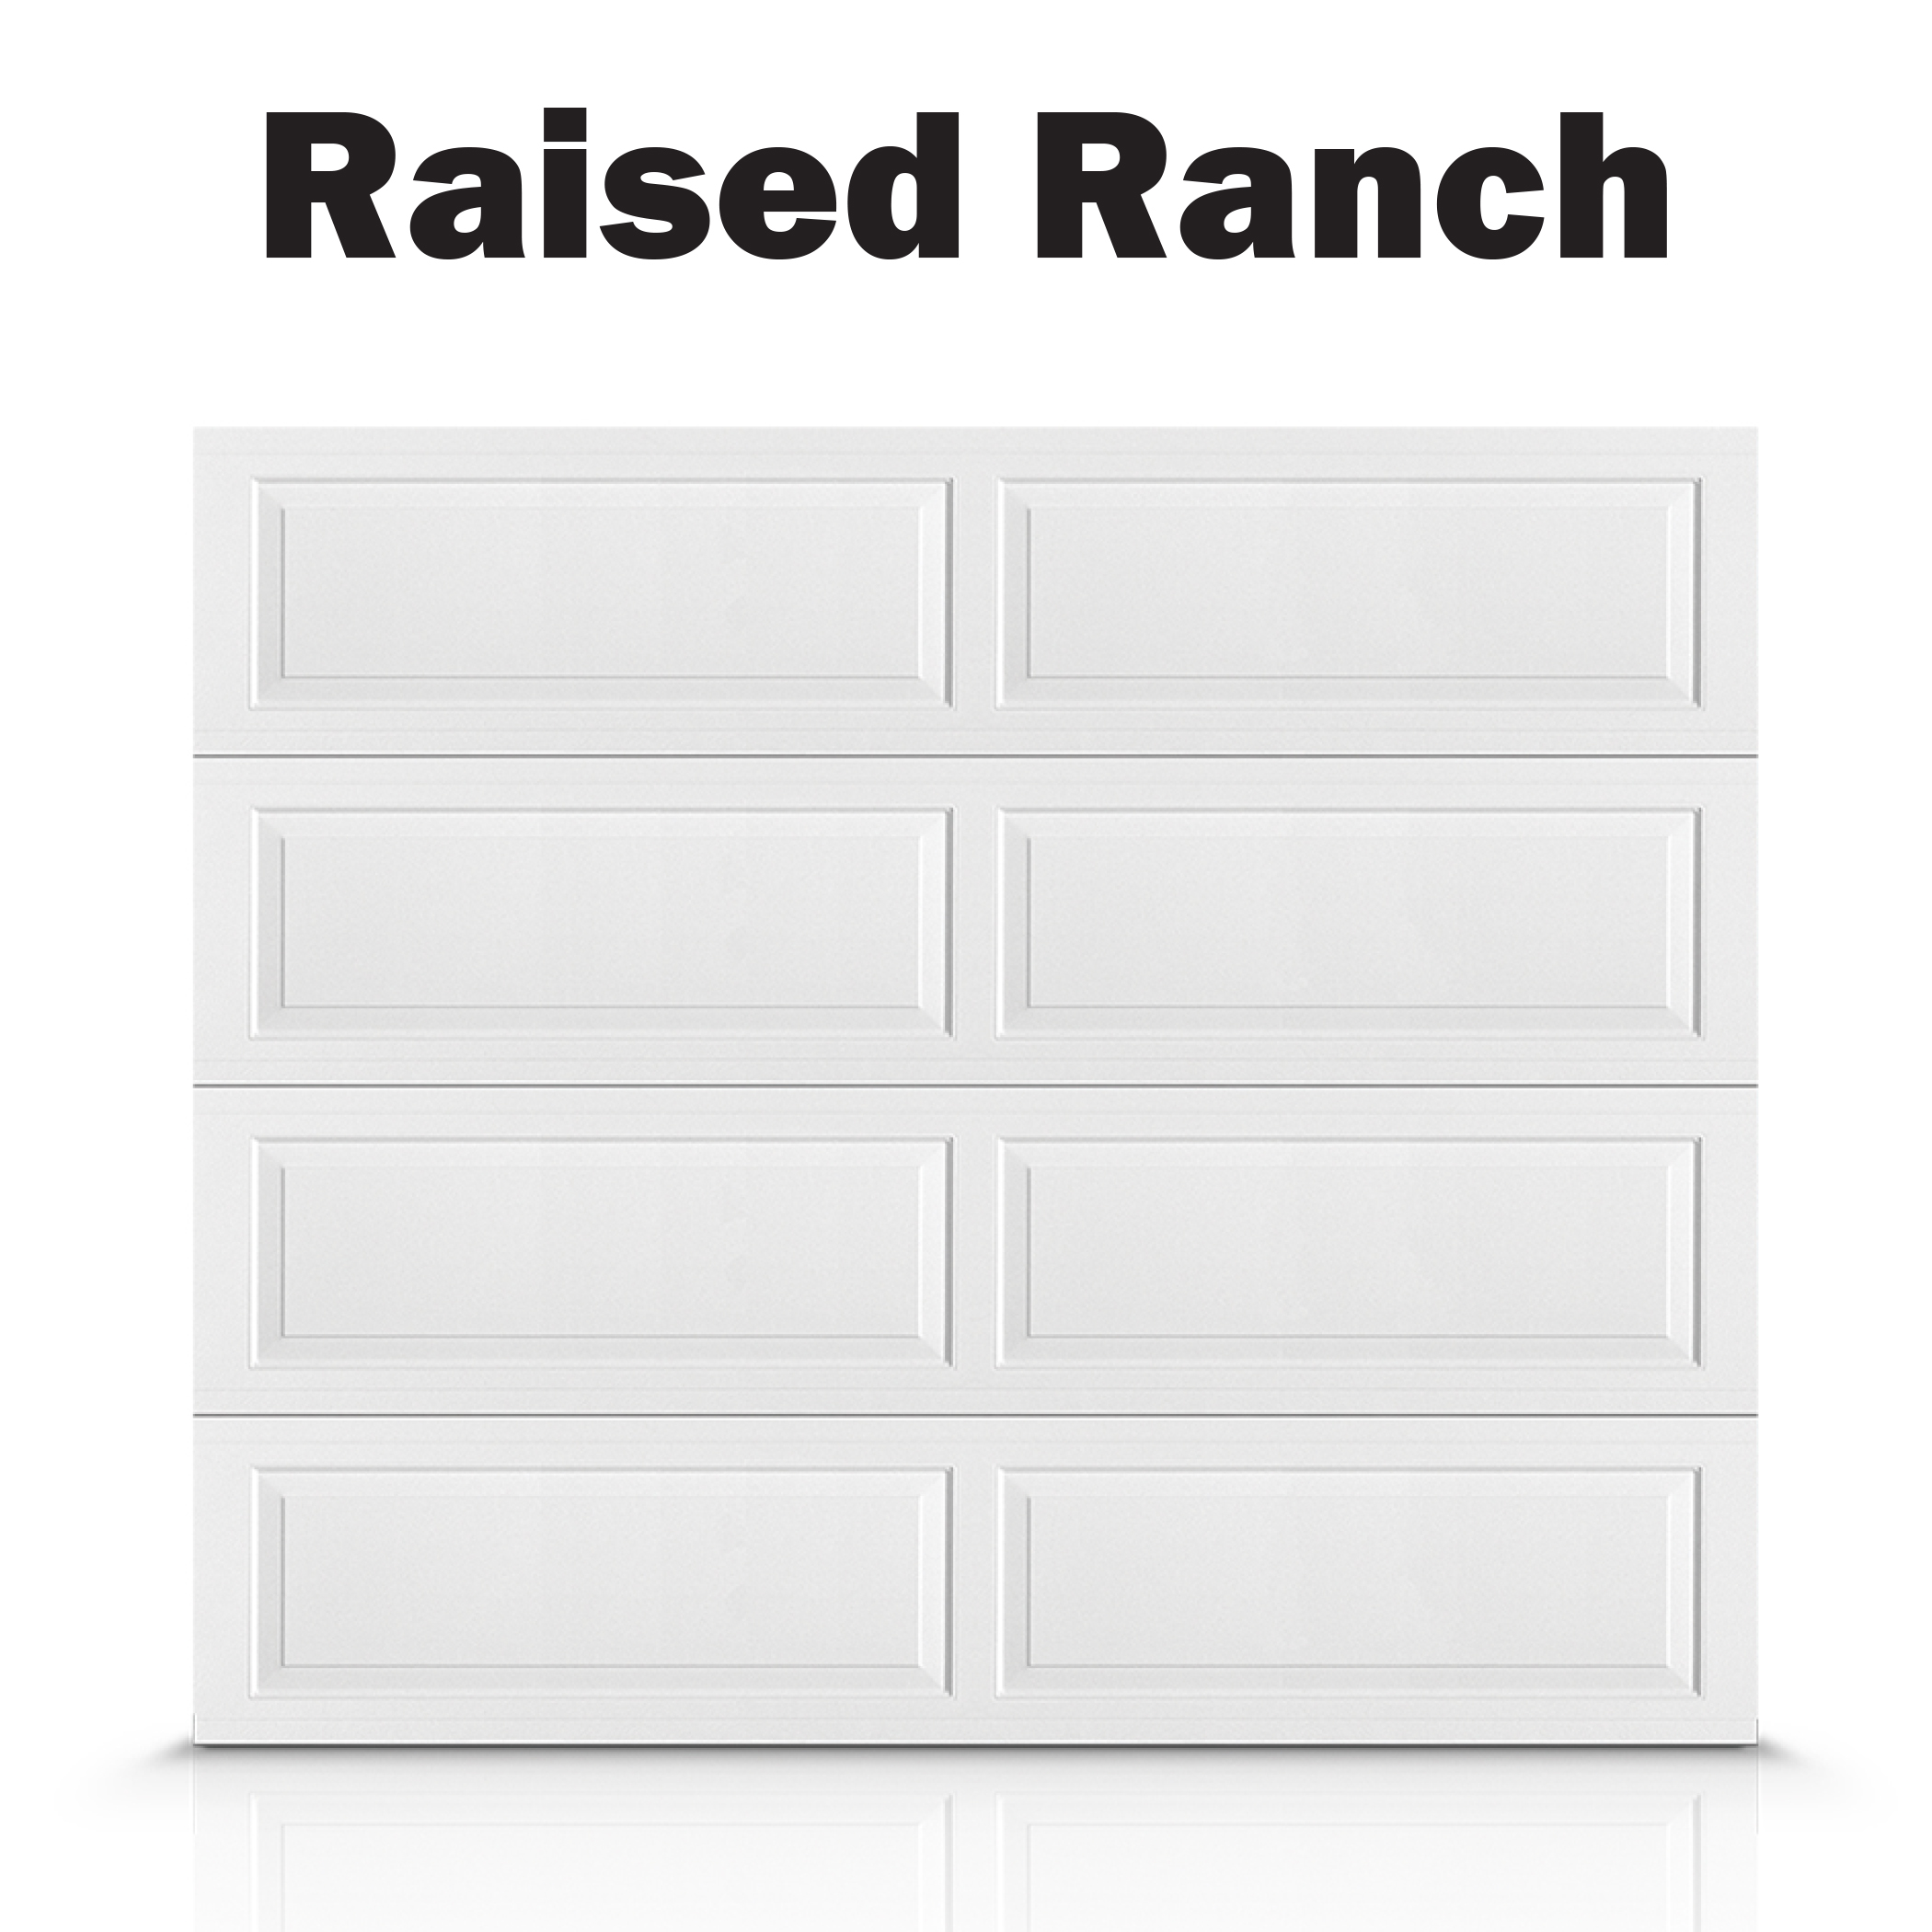 Raised Ranch - Classic.jpg